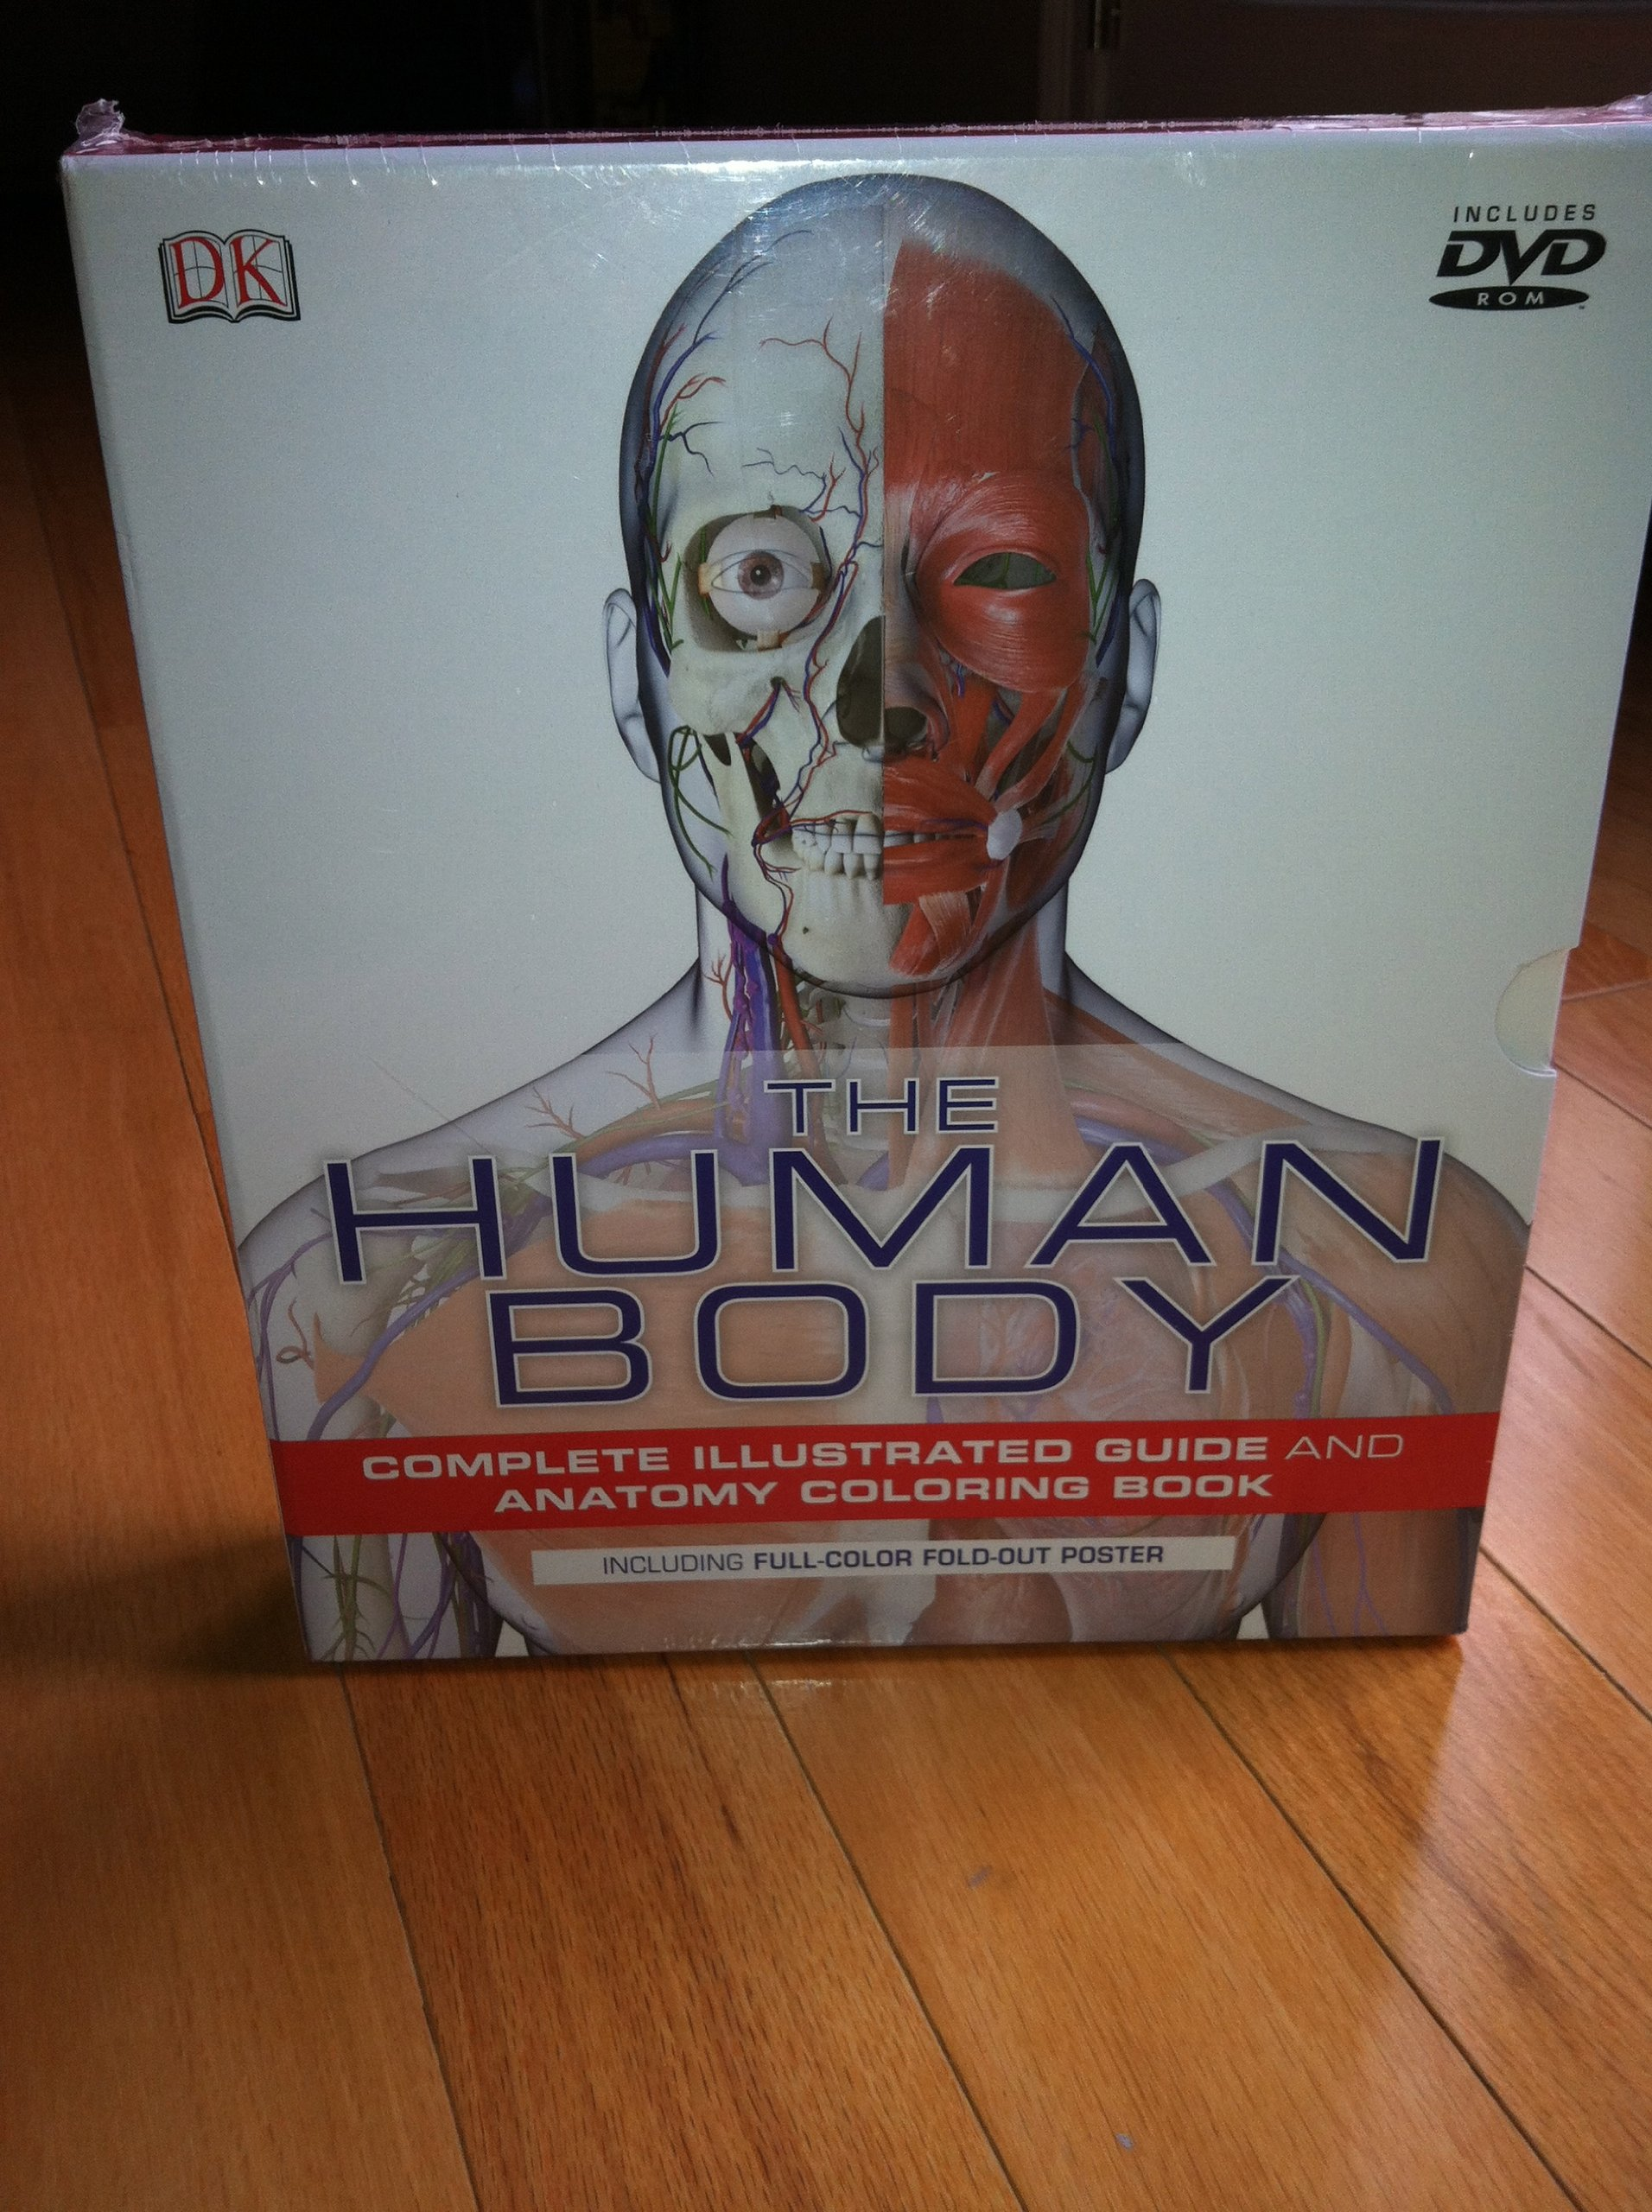 The Human Body Complete Illustrated Guide And Anatomy Coloring Book AND DK